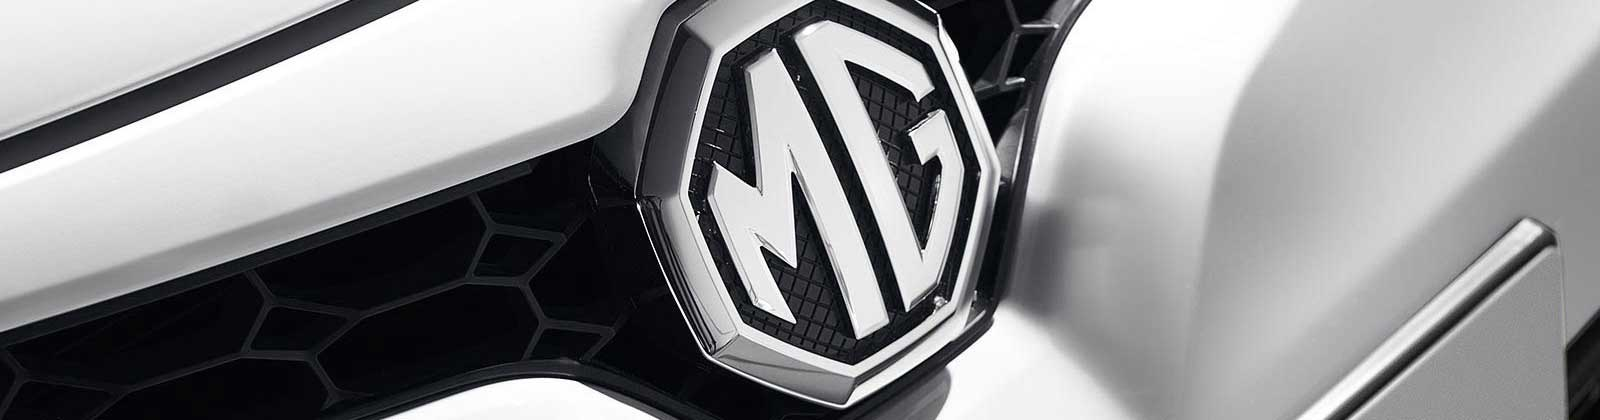 Close up of MG badge